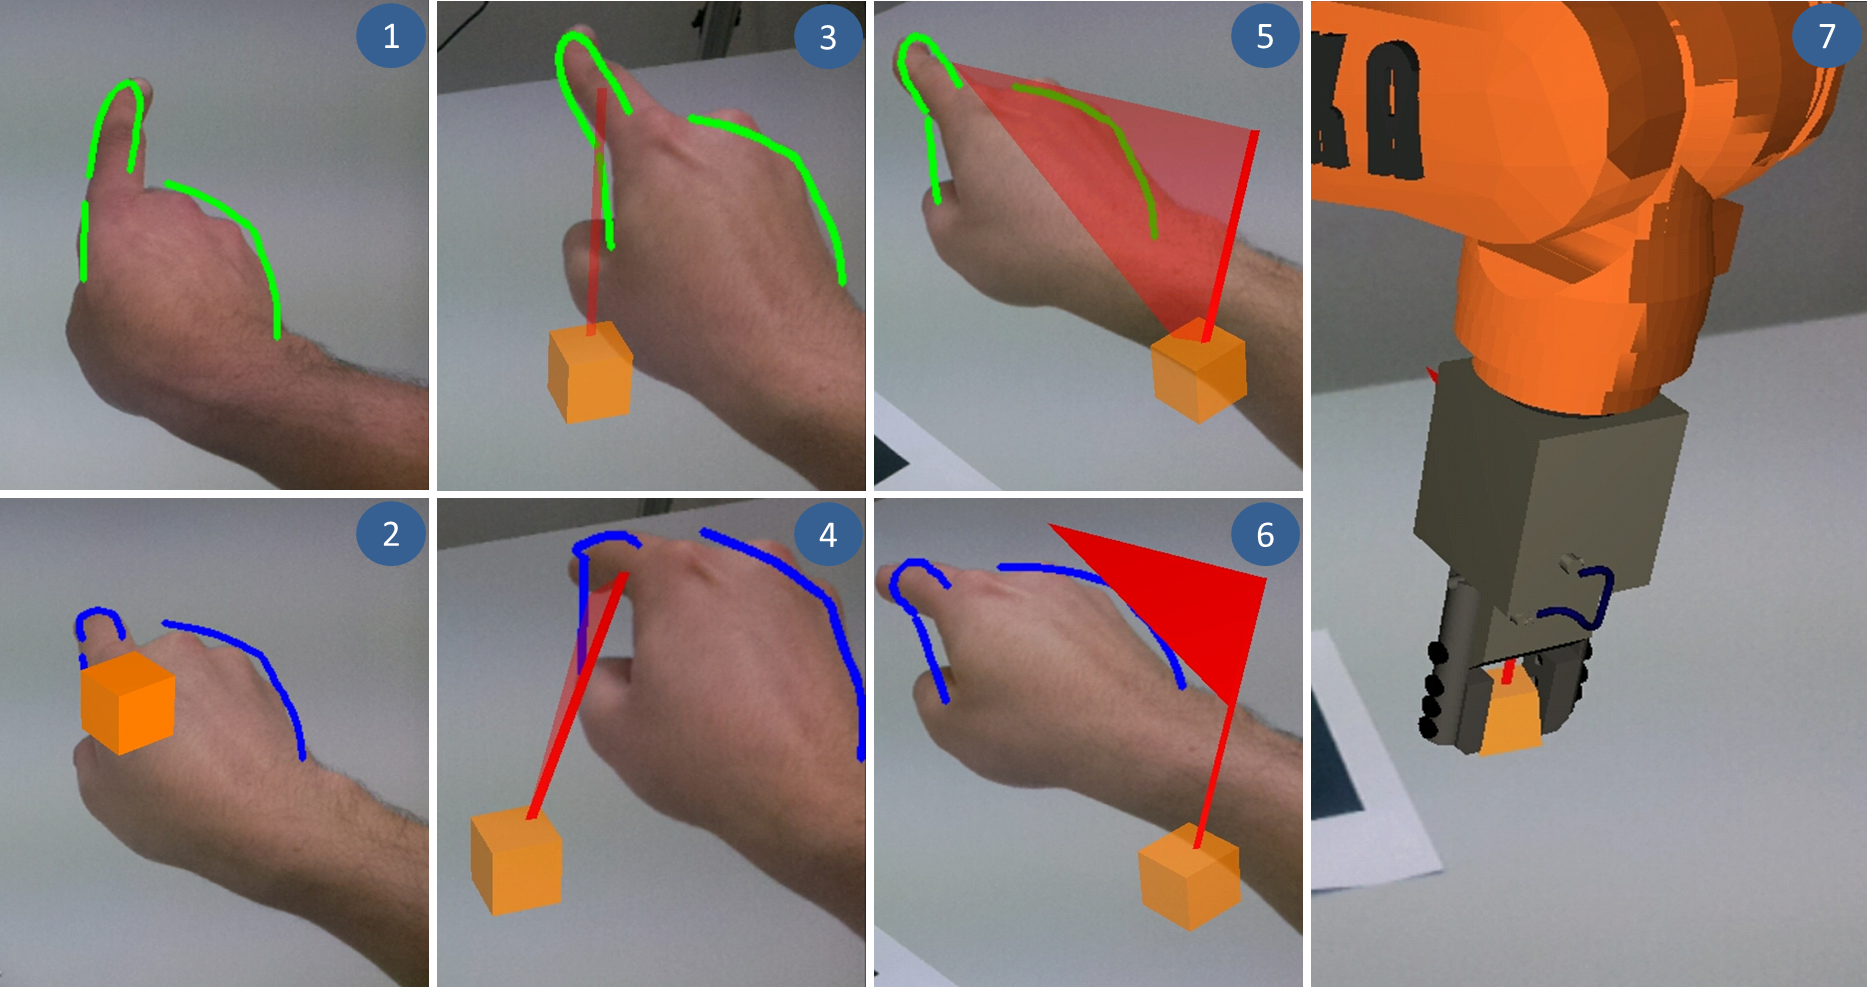 Image above - sequence for the Gestural Definition of Poses: (1) Positioning the hand in the workspace of the robot, (2) definition of the position, (3) feedback on the potential working direction of the Tool Center Point (TCP), (4) definition of working direction of the TCP, (5) feedback on the potential orientation of the second coordinate axis of the TCP, (6) definition of the second coordinate axis and (7) approaching the pose by the virtual robot.